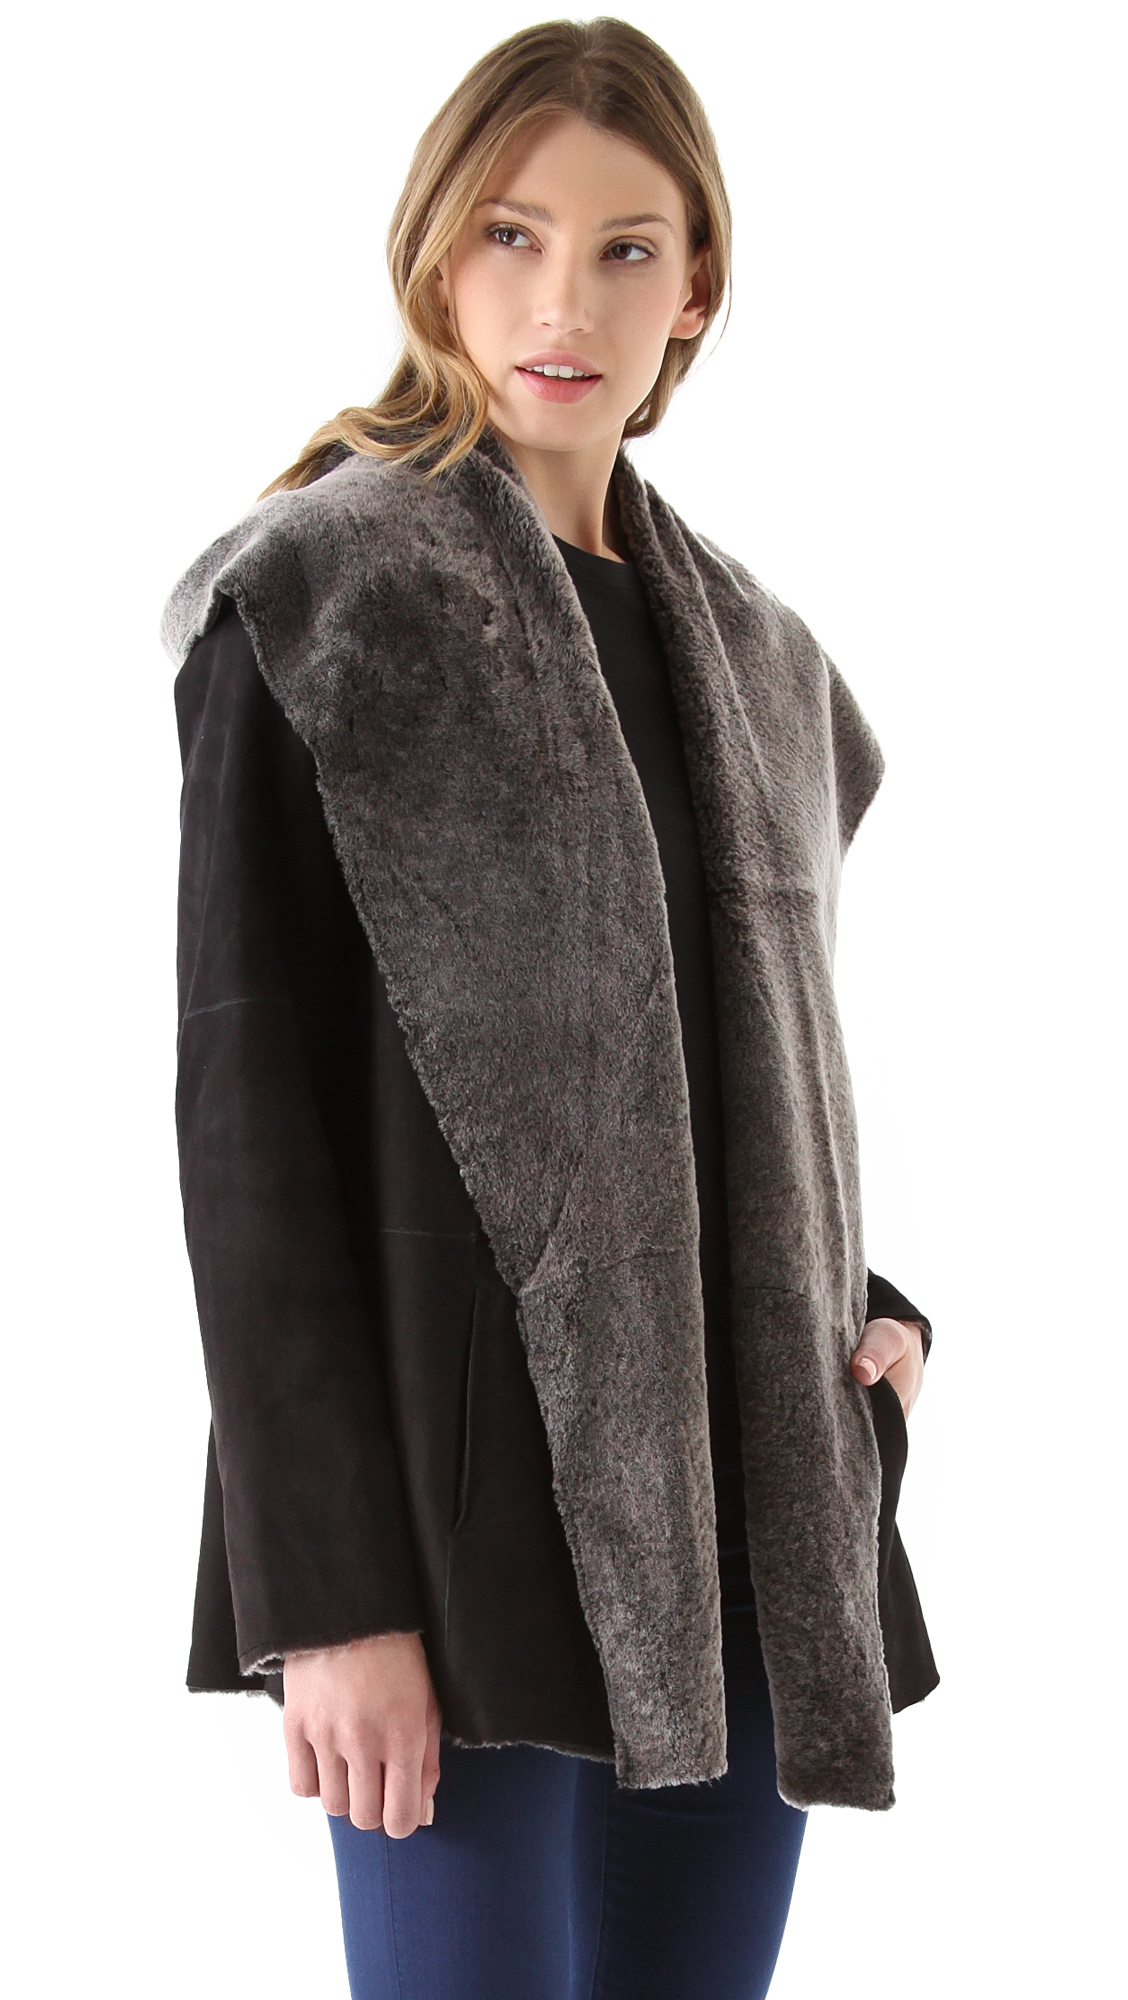 hooded via vince stylst drape fluid coat woman drapes post